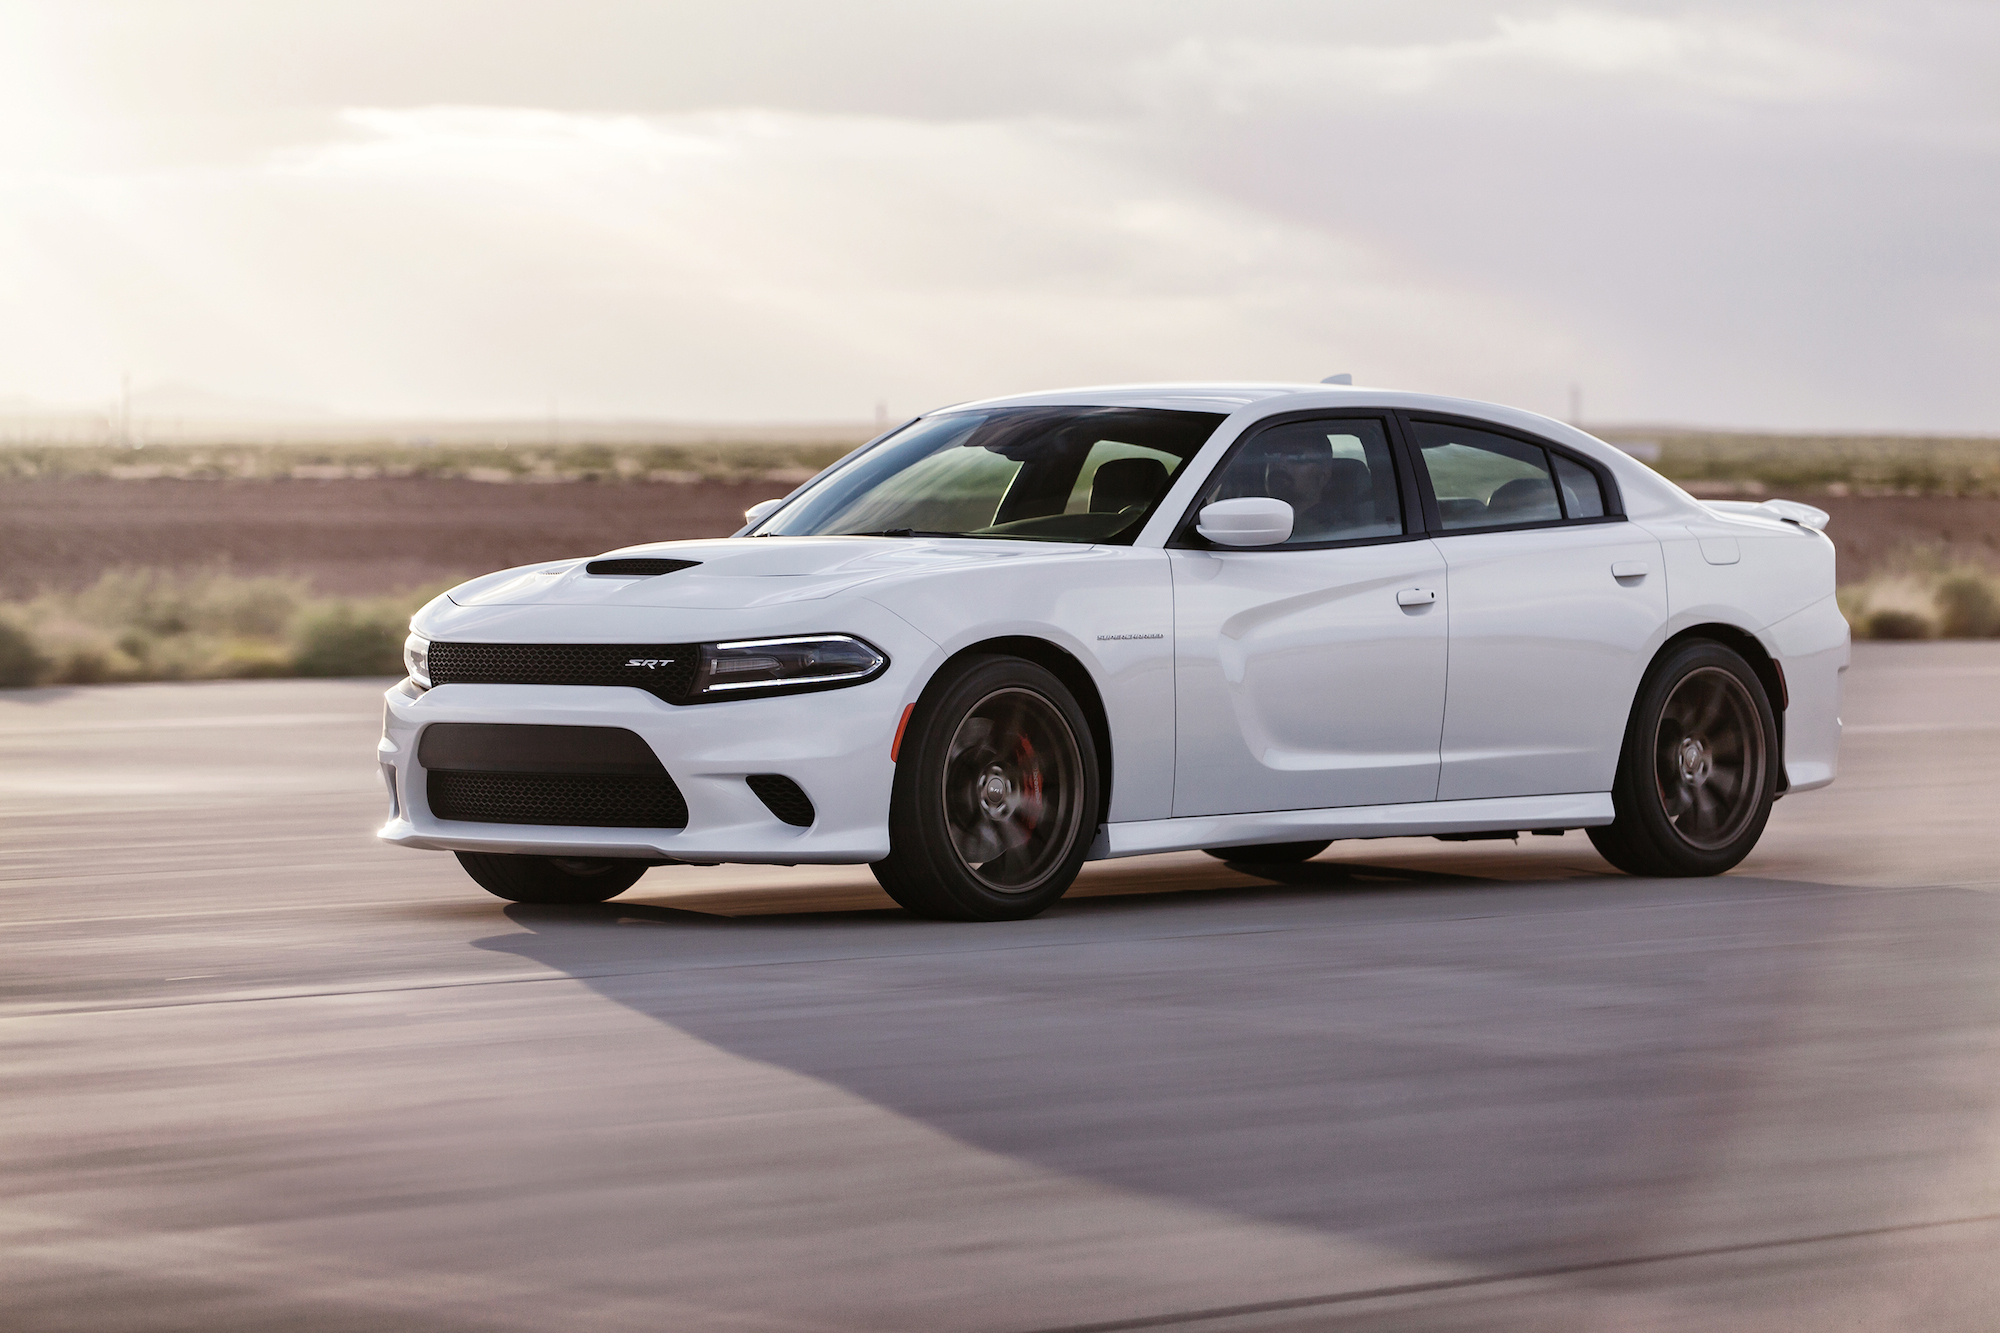 2015 Dodge Charger Review, Ratings, Specs, Prices, and ...2015 Dodge Charger Coupe